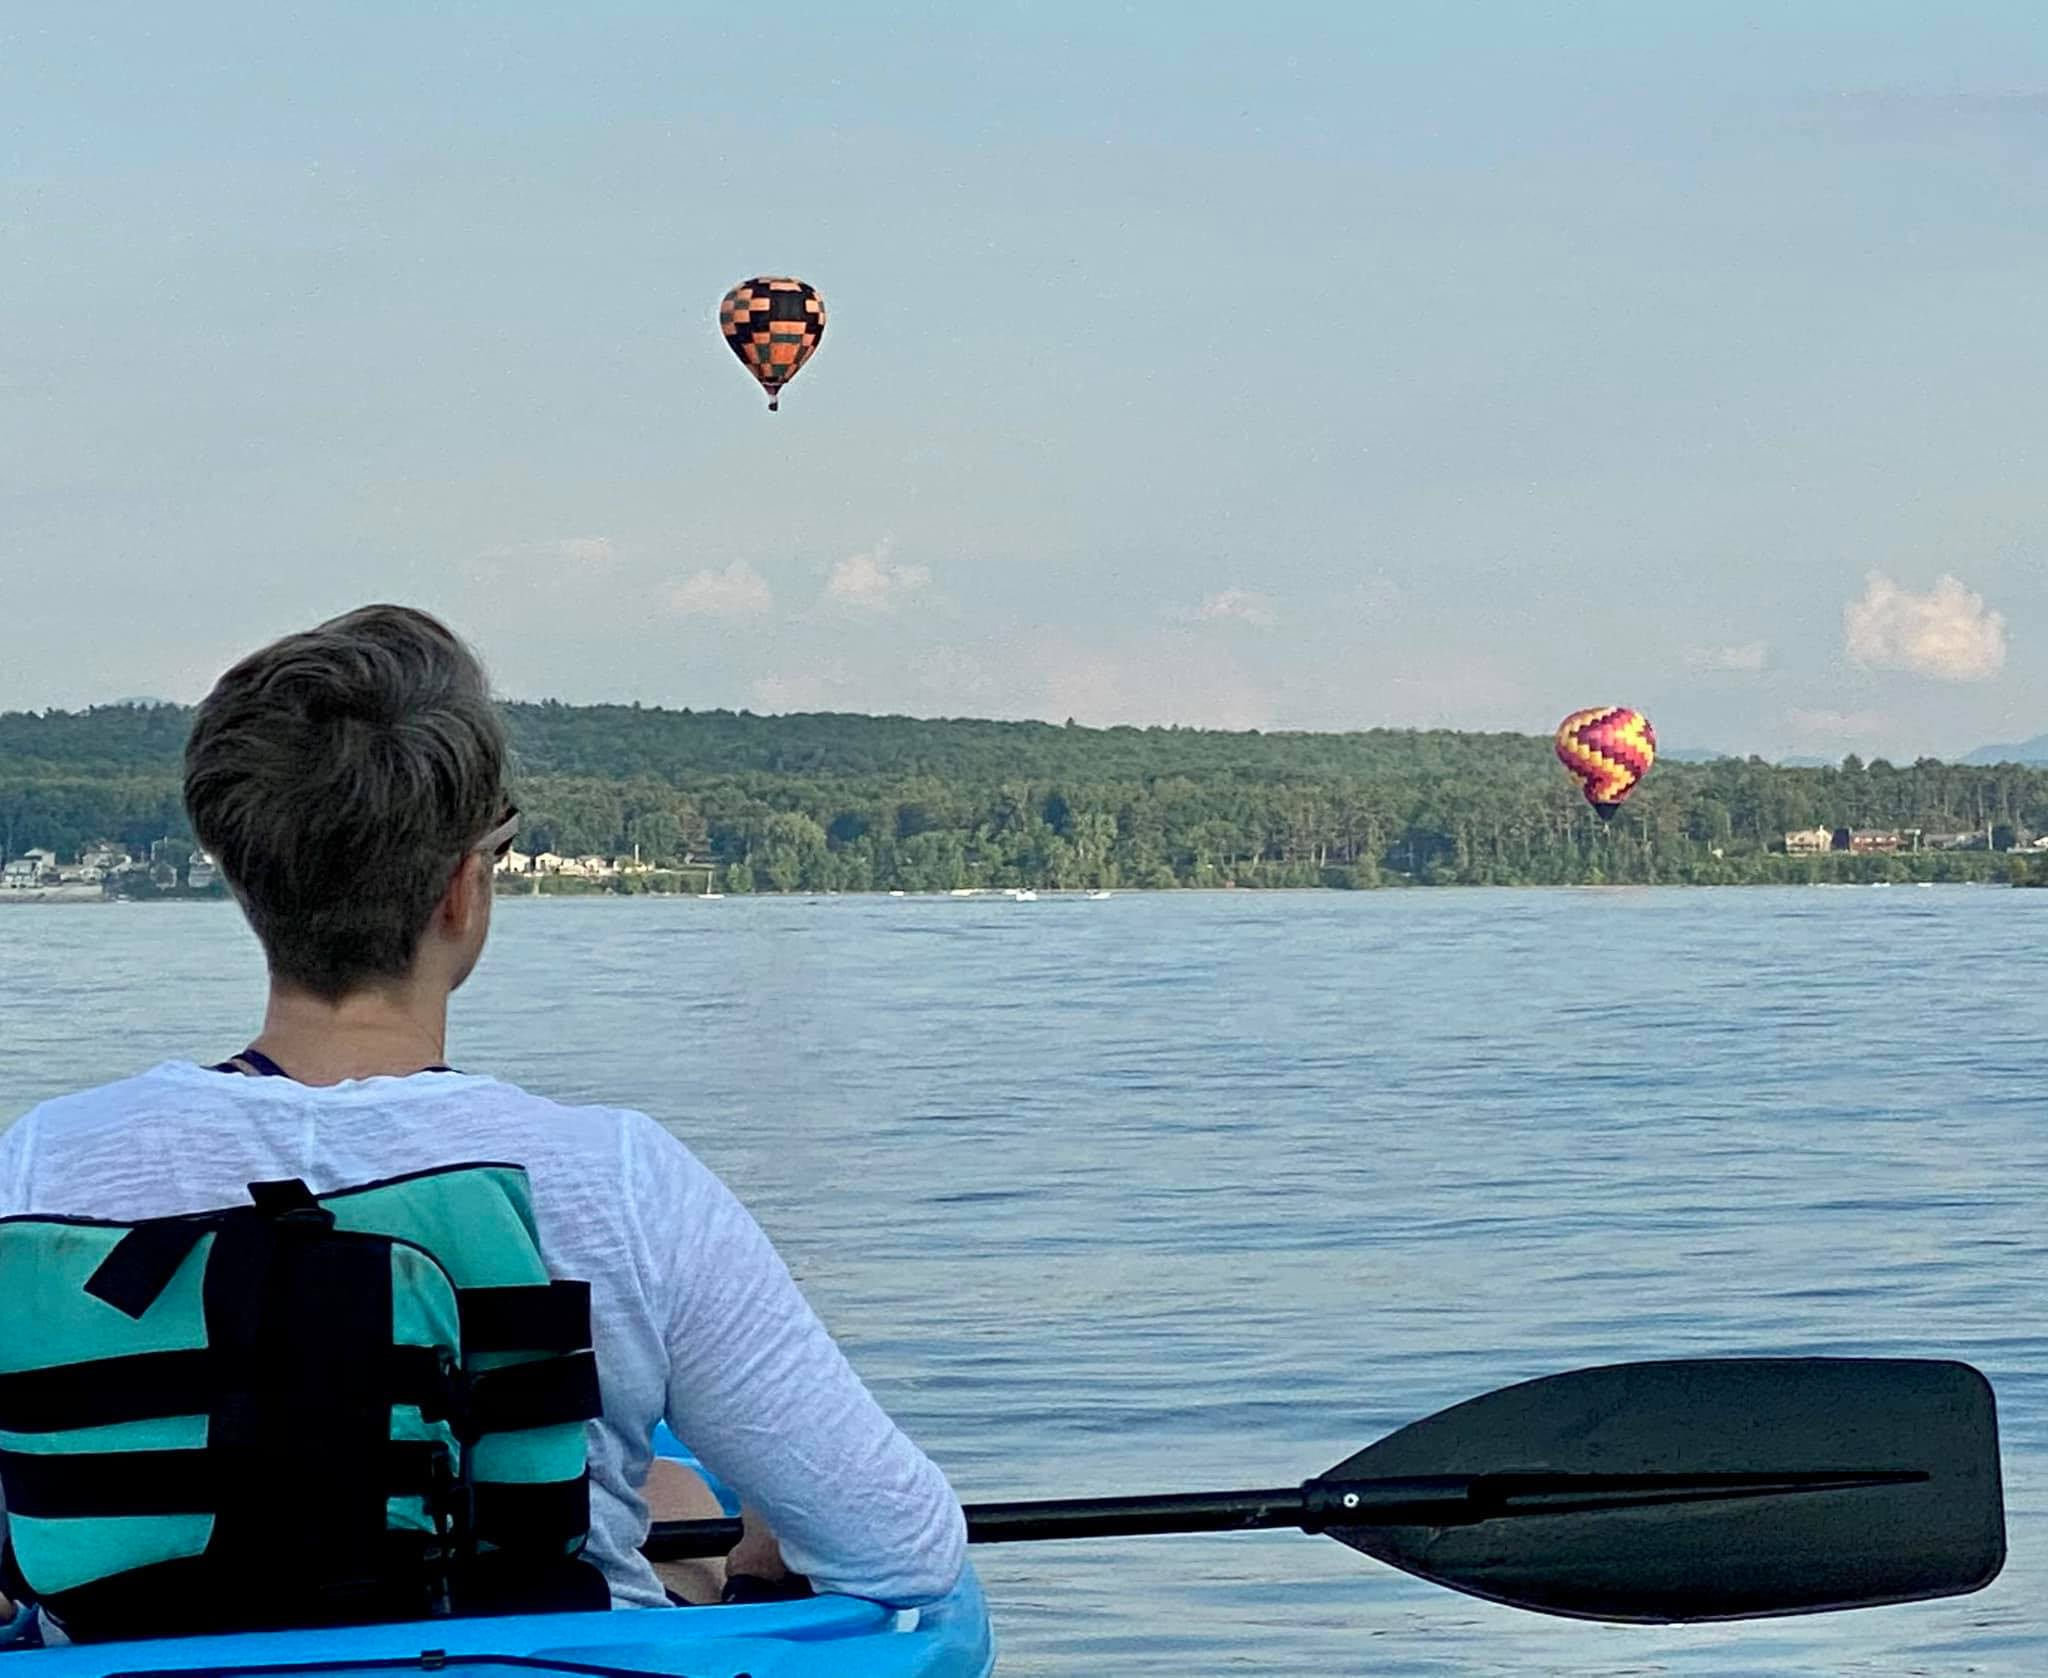 A woman with short gray hair sits in a kayak on a lake with her back to the camera, watching two hot-air balloons fly over the lake.